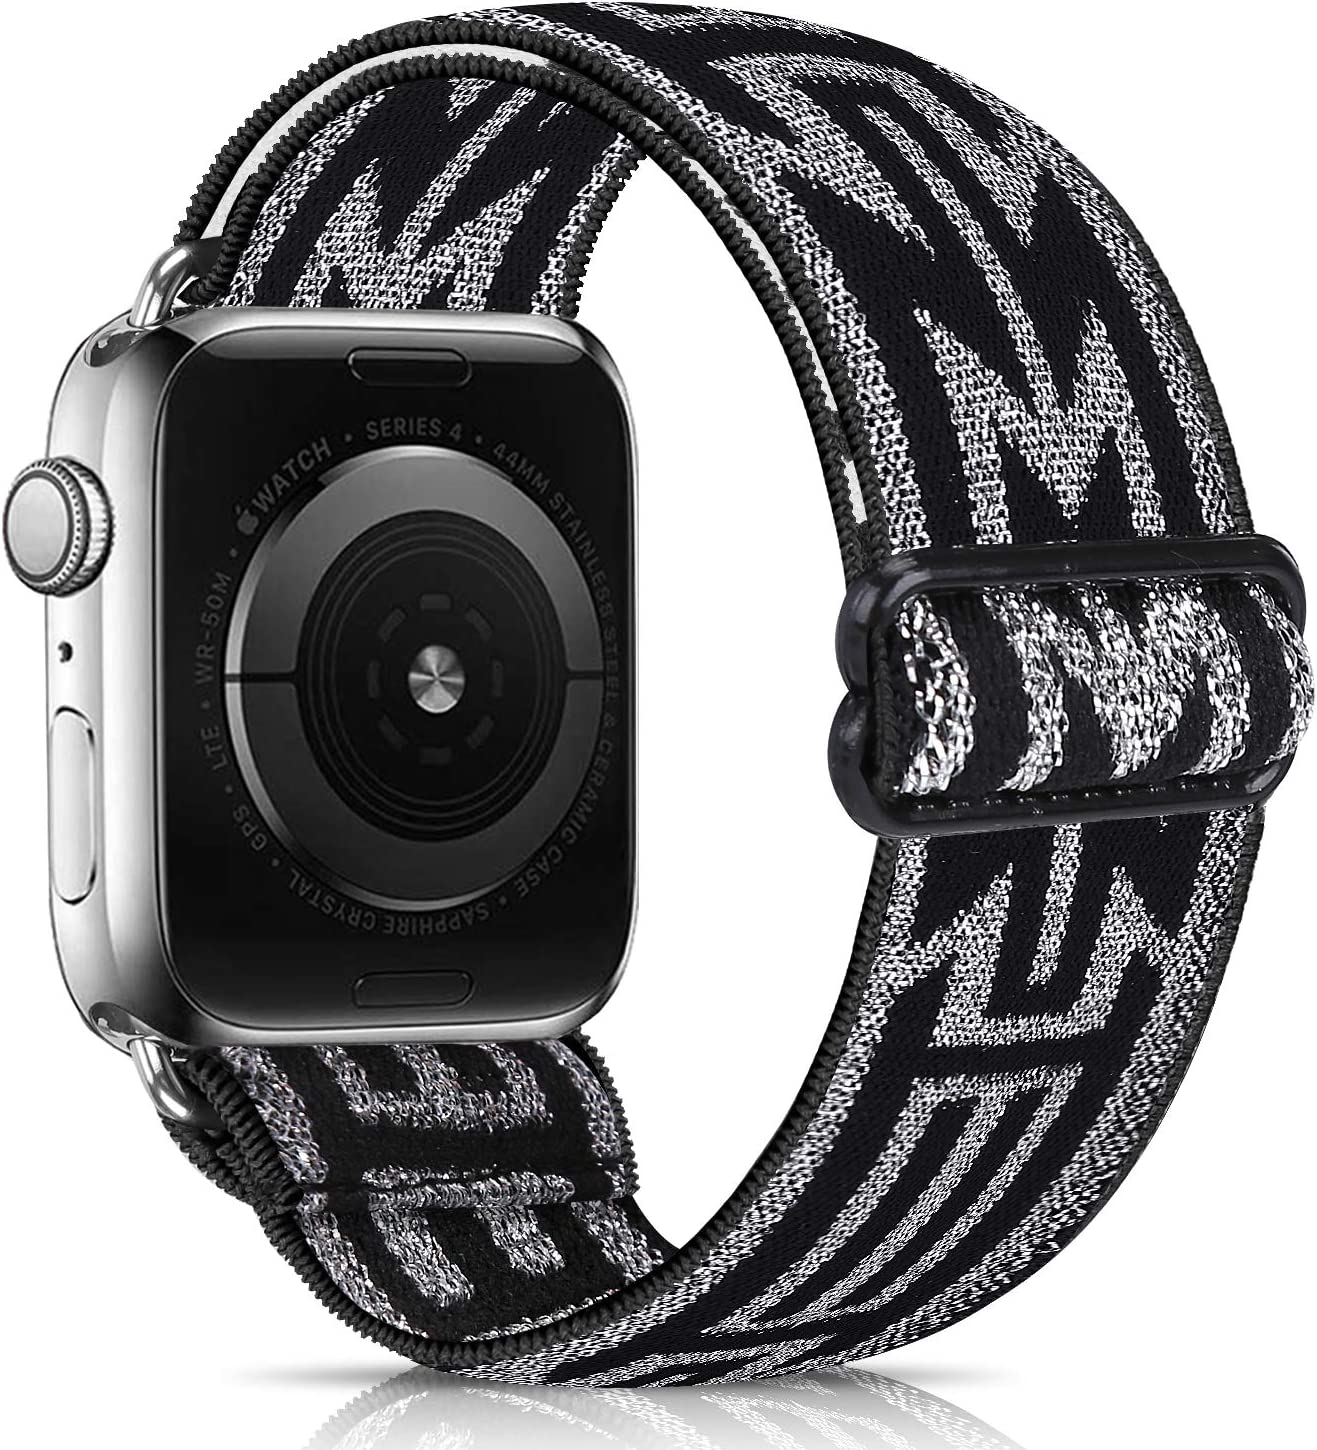 URU Shield Compatible with Apple Watch Elastics Band for Women Men,Pattern Stretch Bands Fashion Handmade Replacement Strap for iWatch Series 6 5 4 3 2 1/SE